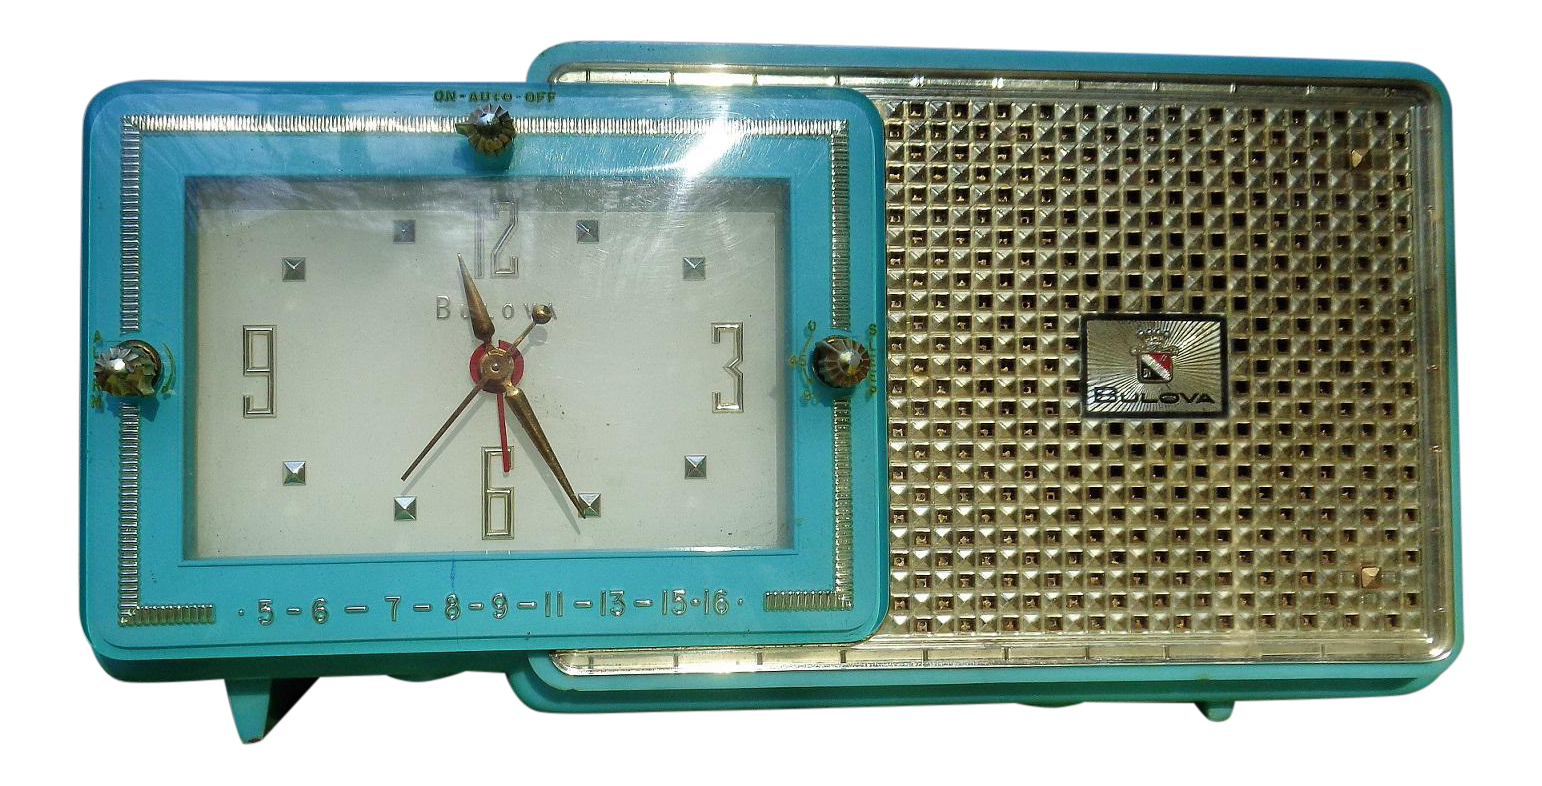 Vintage art deco bulova clock radio chairish for Kitchen cabinet trends 2018 combined with wall clock art deco